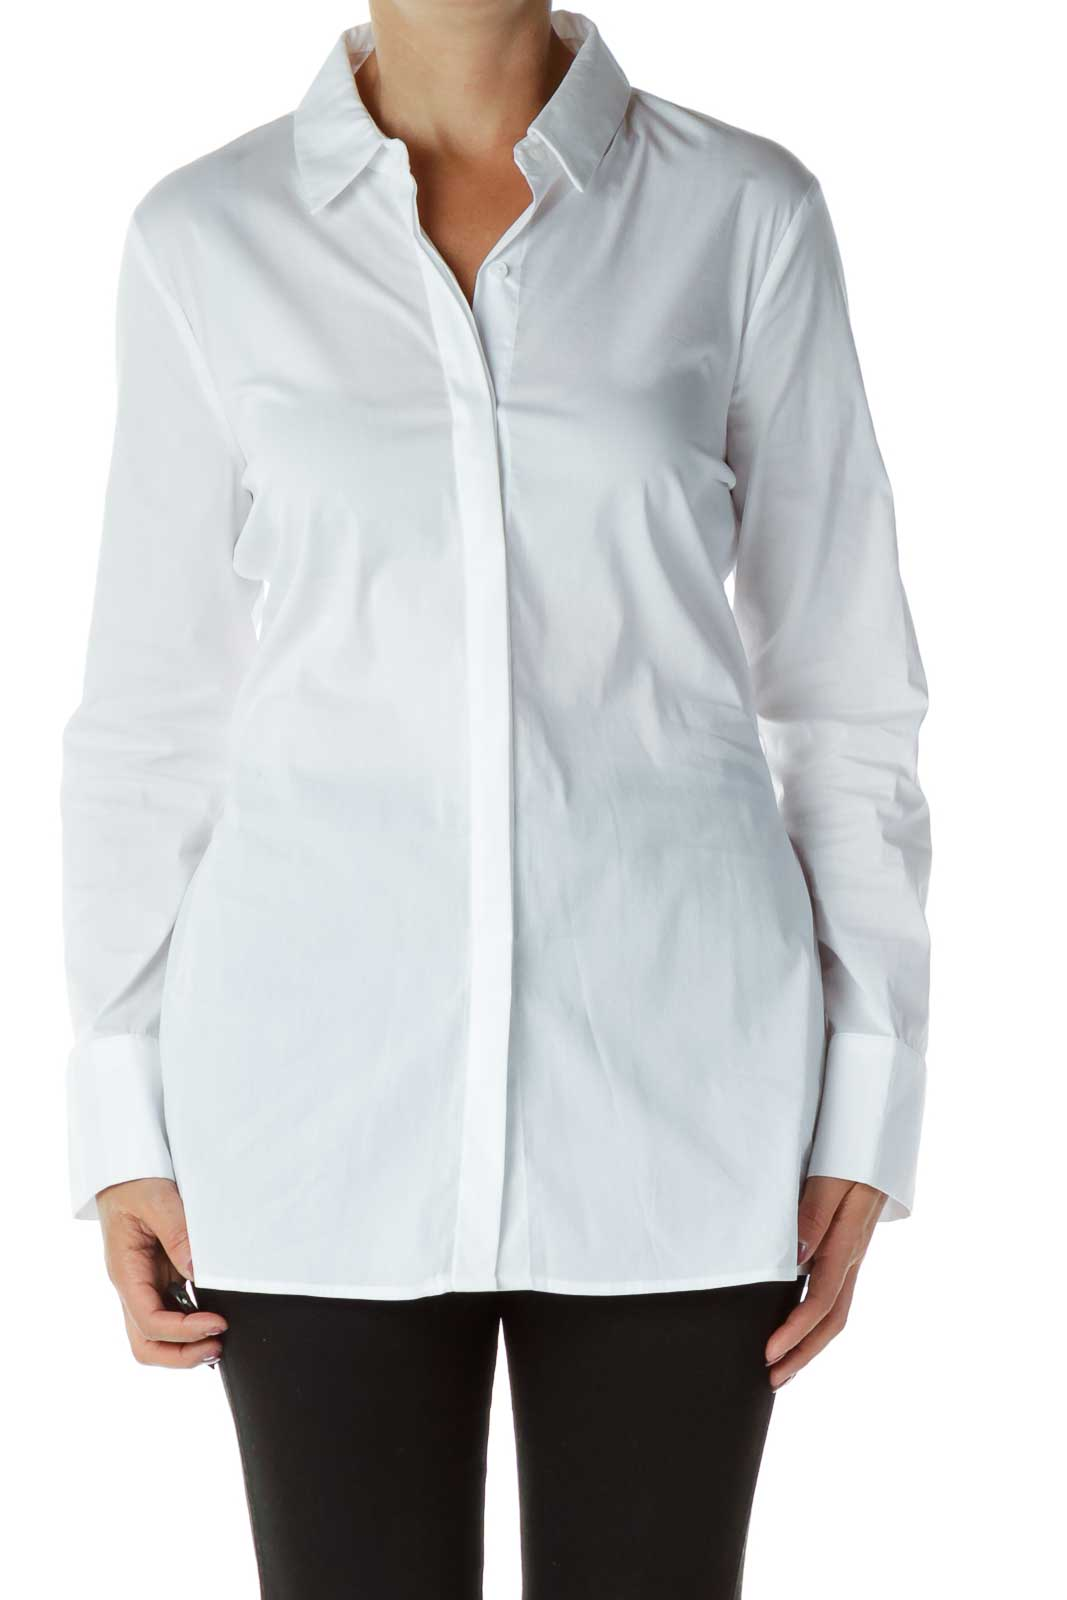 White Collared Buttoned Polo Shirt Front